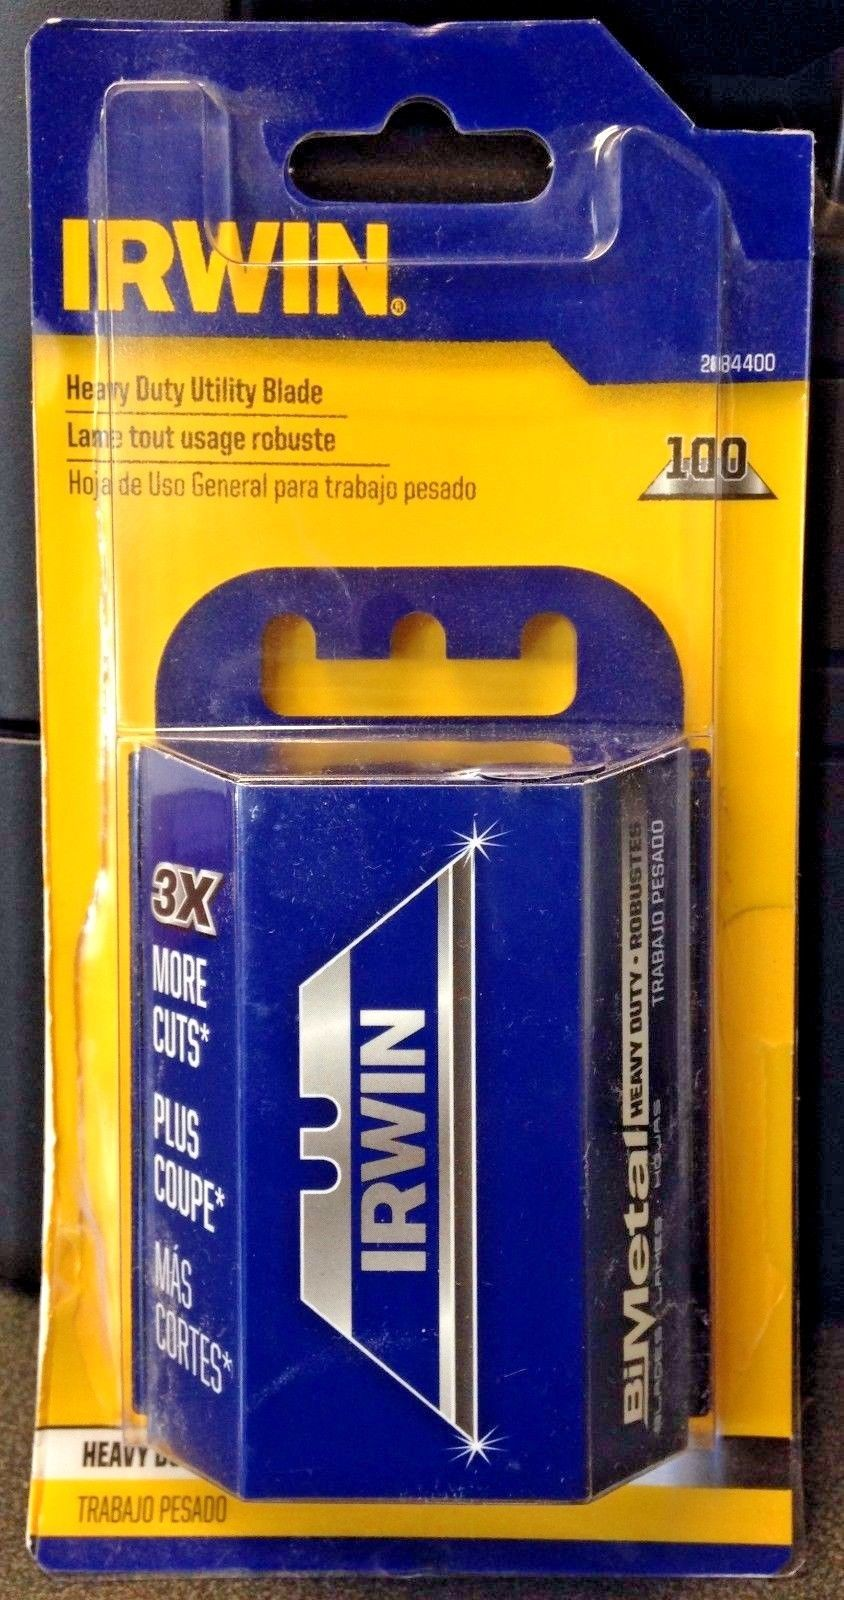 Irwin 2084400 Bi-Metal  Heavy Duty Utility Blade 100 Pack Mexico